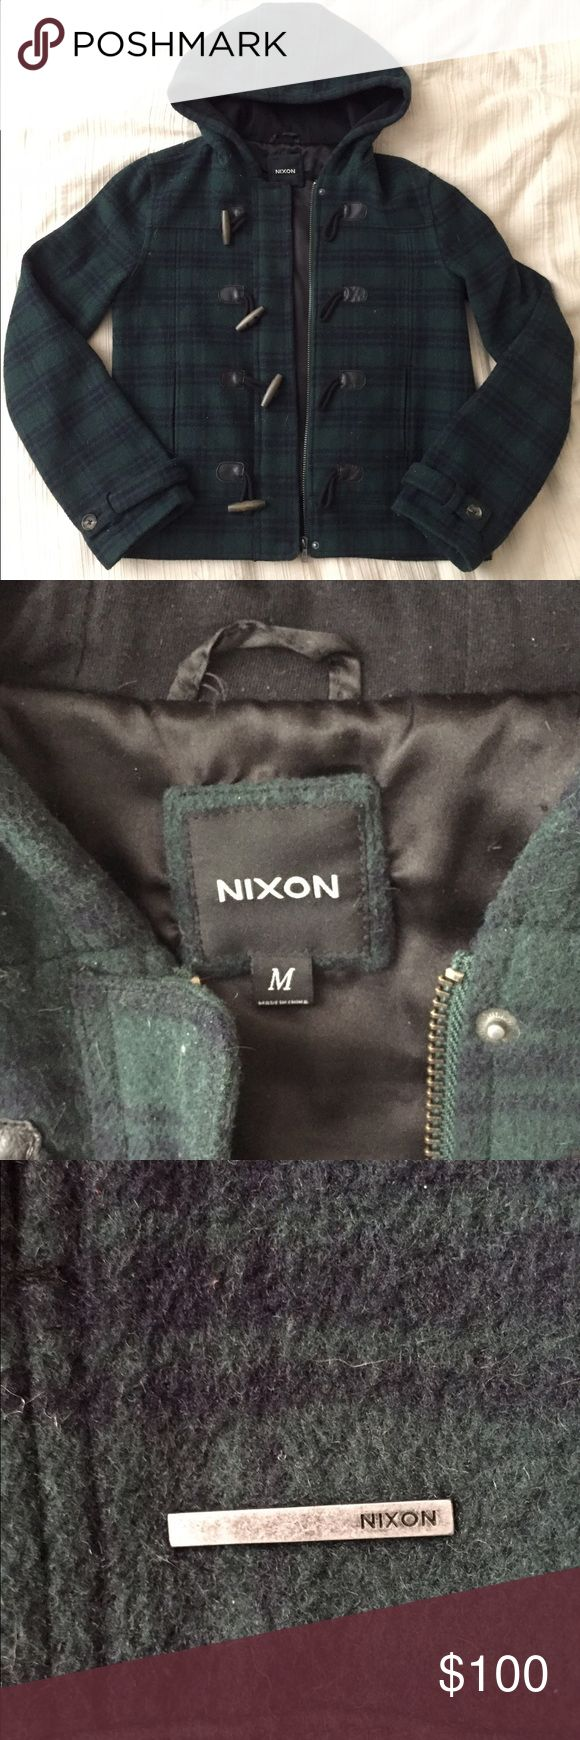 Nixon Green Women's Zip Up Hooded Coat Jacket 🌲FOREST GREEN🌲 NIXON WOMEN'S COAT ZIP UP HOOD / WORN 🖐🏽FUL OF TIMES / SIZE M / Shell: 50% wool 50% polyester Body/Sleeve Lining: 100% polyester Hood Lining: 100% cotton / SUPER WARM AND COZY 🐻🔥❄️ / Flattering / Taking offers!! Nixon Jackets & Coats